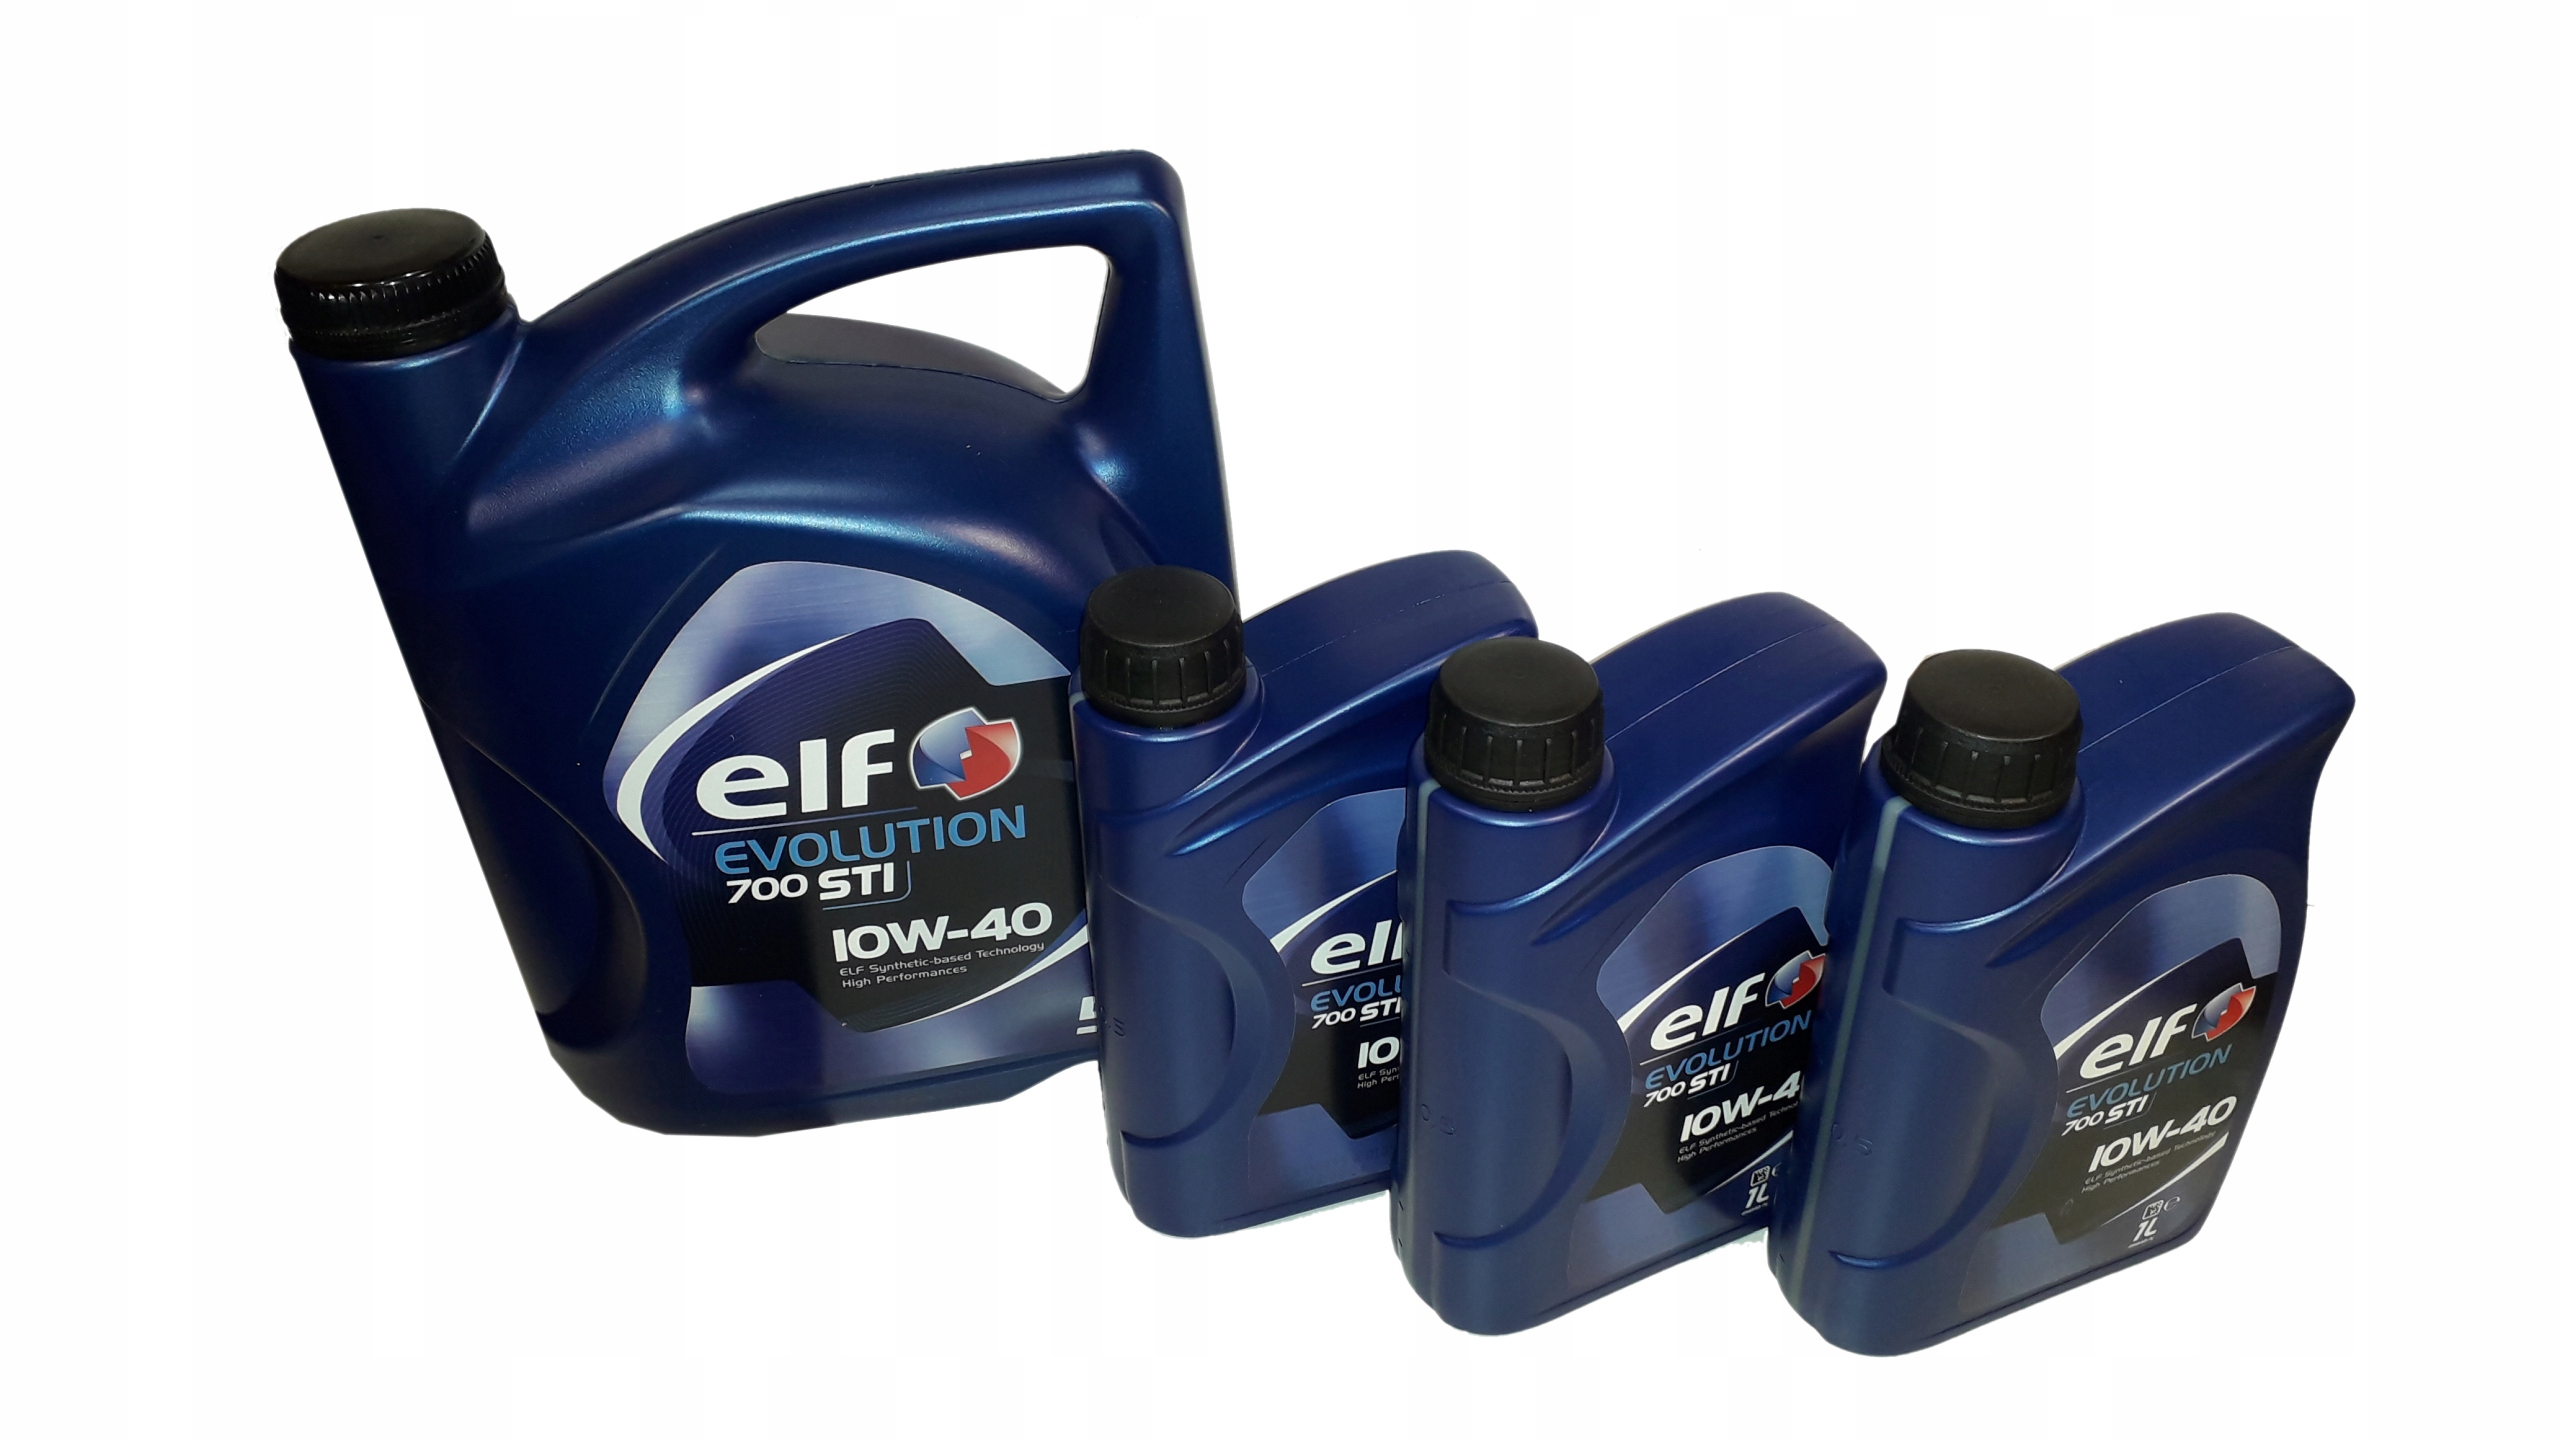 OLEJ ELF EVOLUTION 700 STI 10W40 8L 5L + 3X 1L